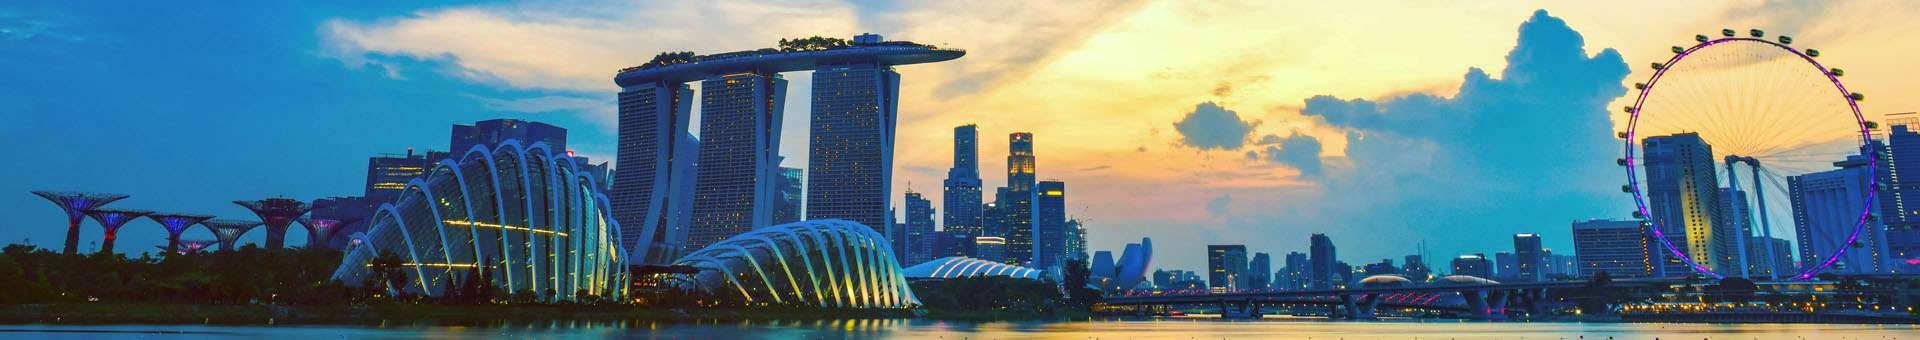 Search Whois information of domain names in Singapore